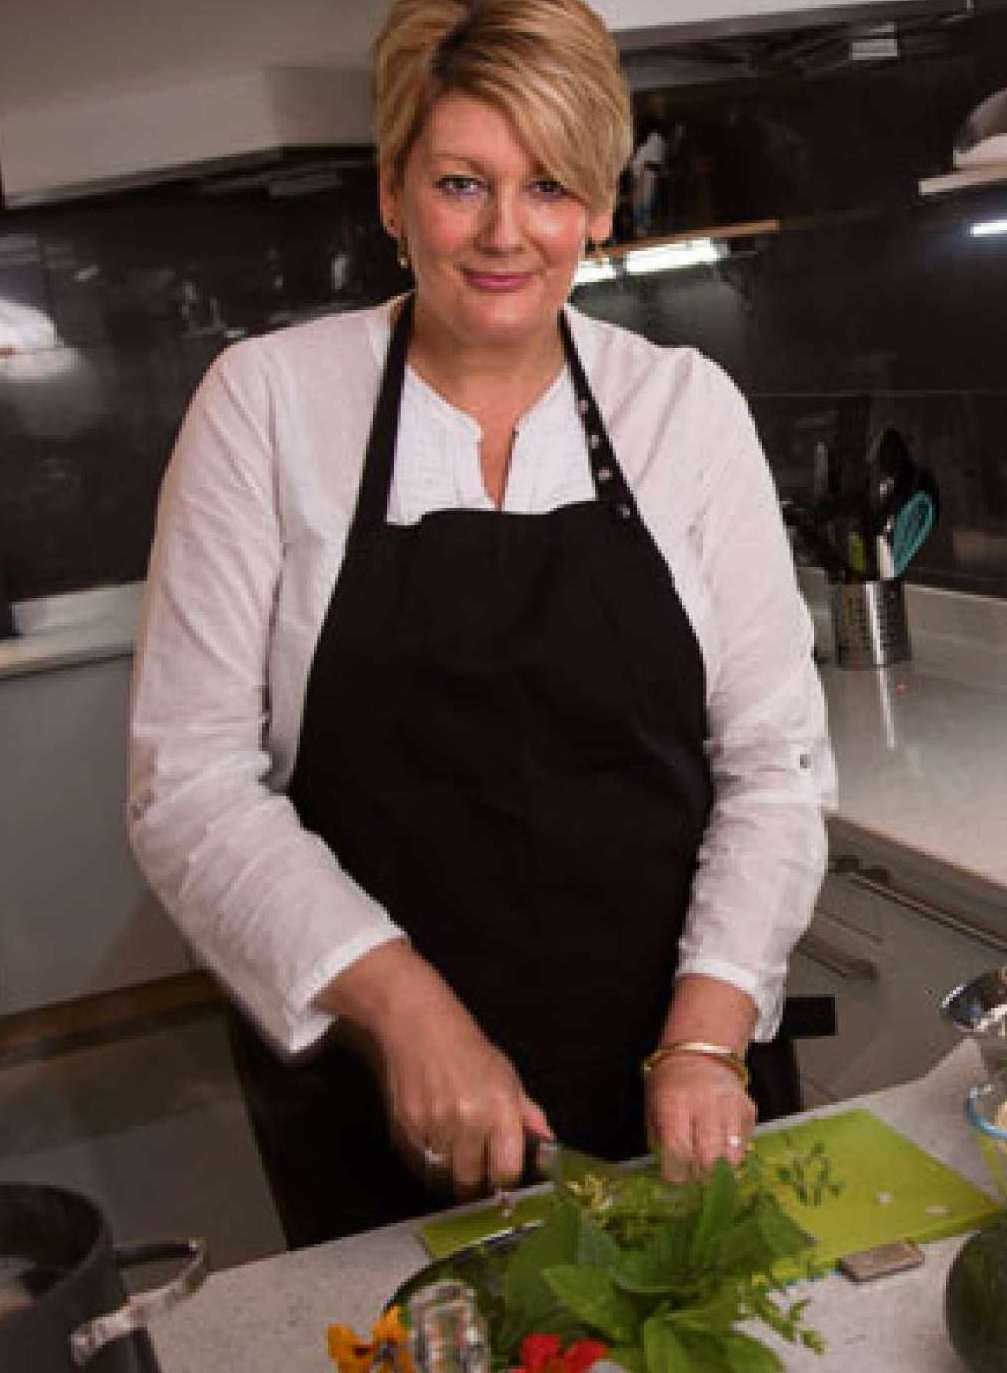 Top chef Angela Gray will judge the cakes